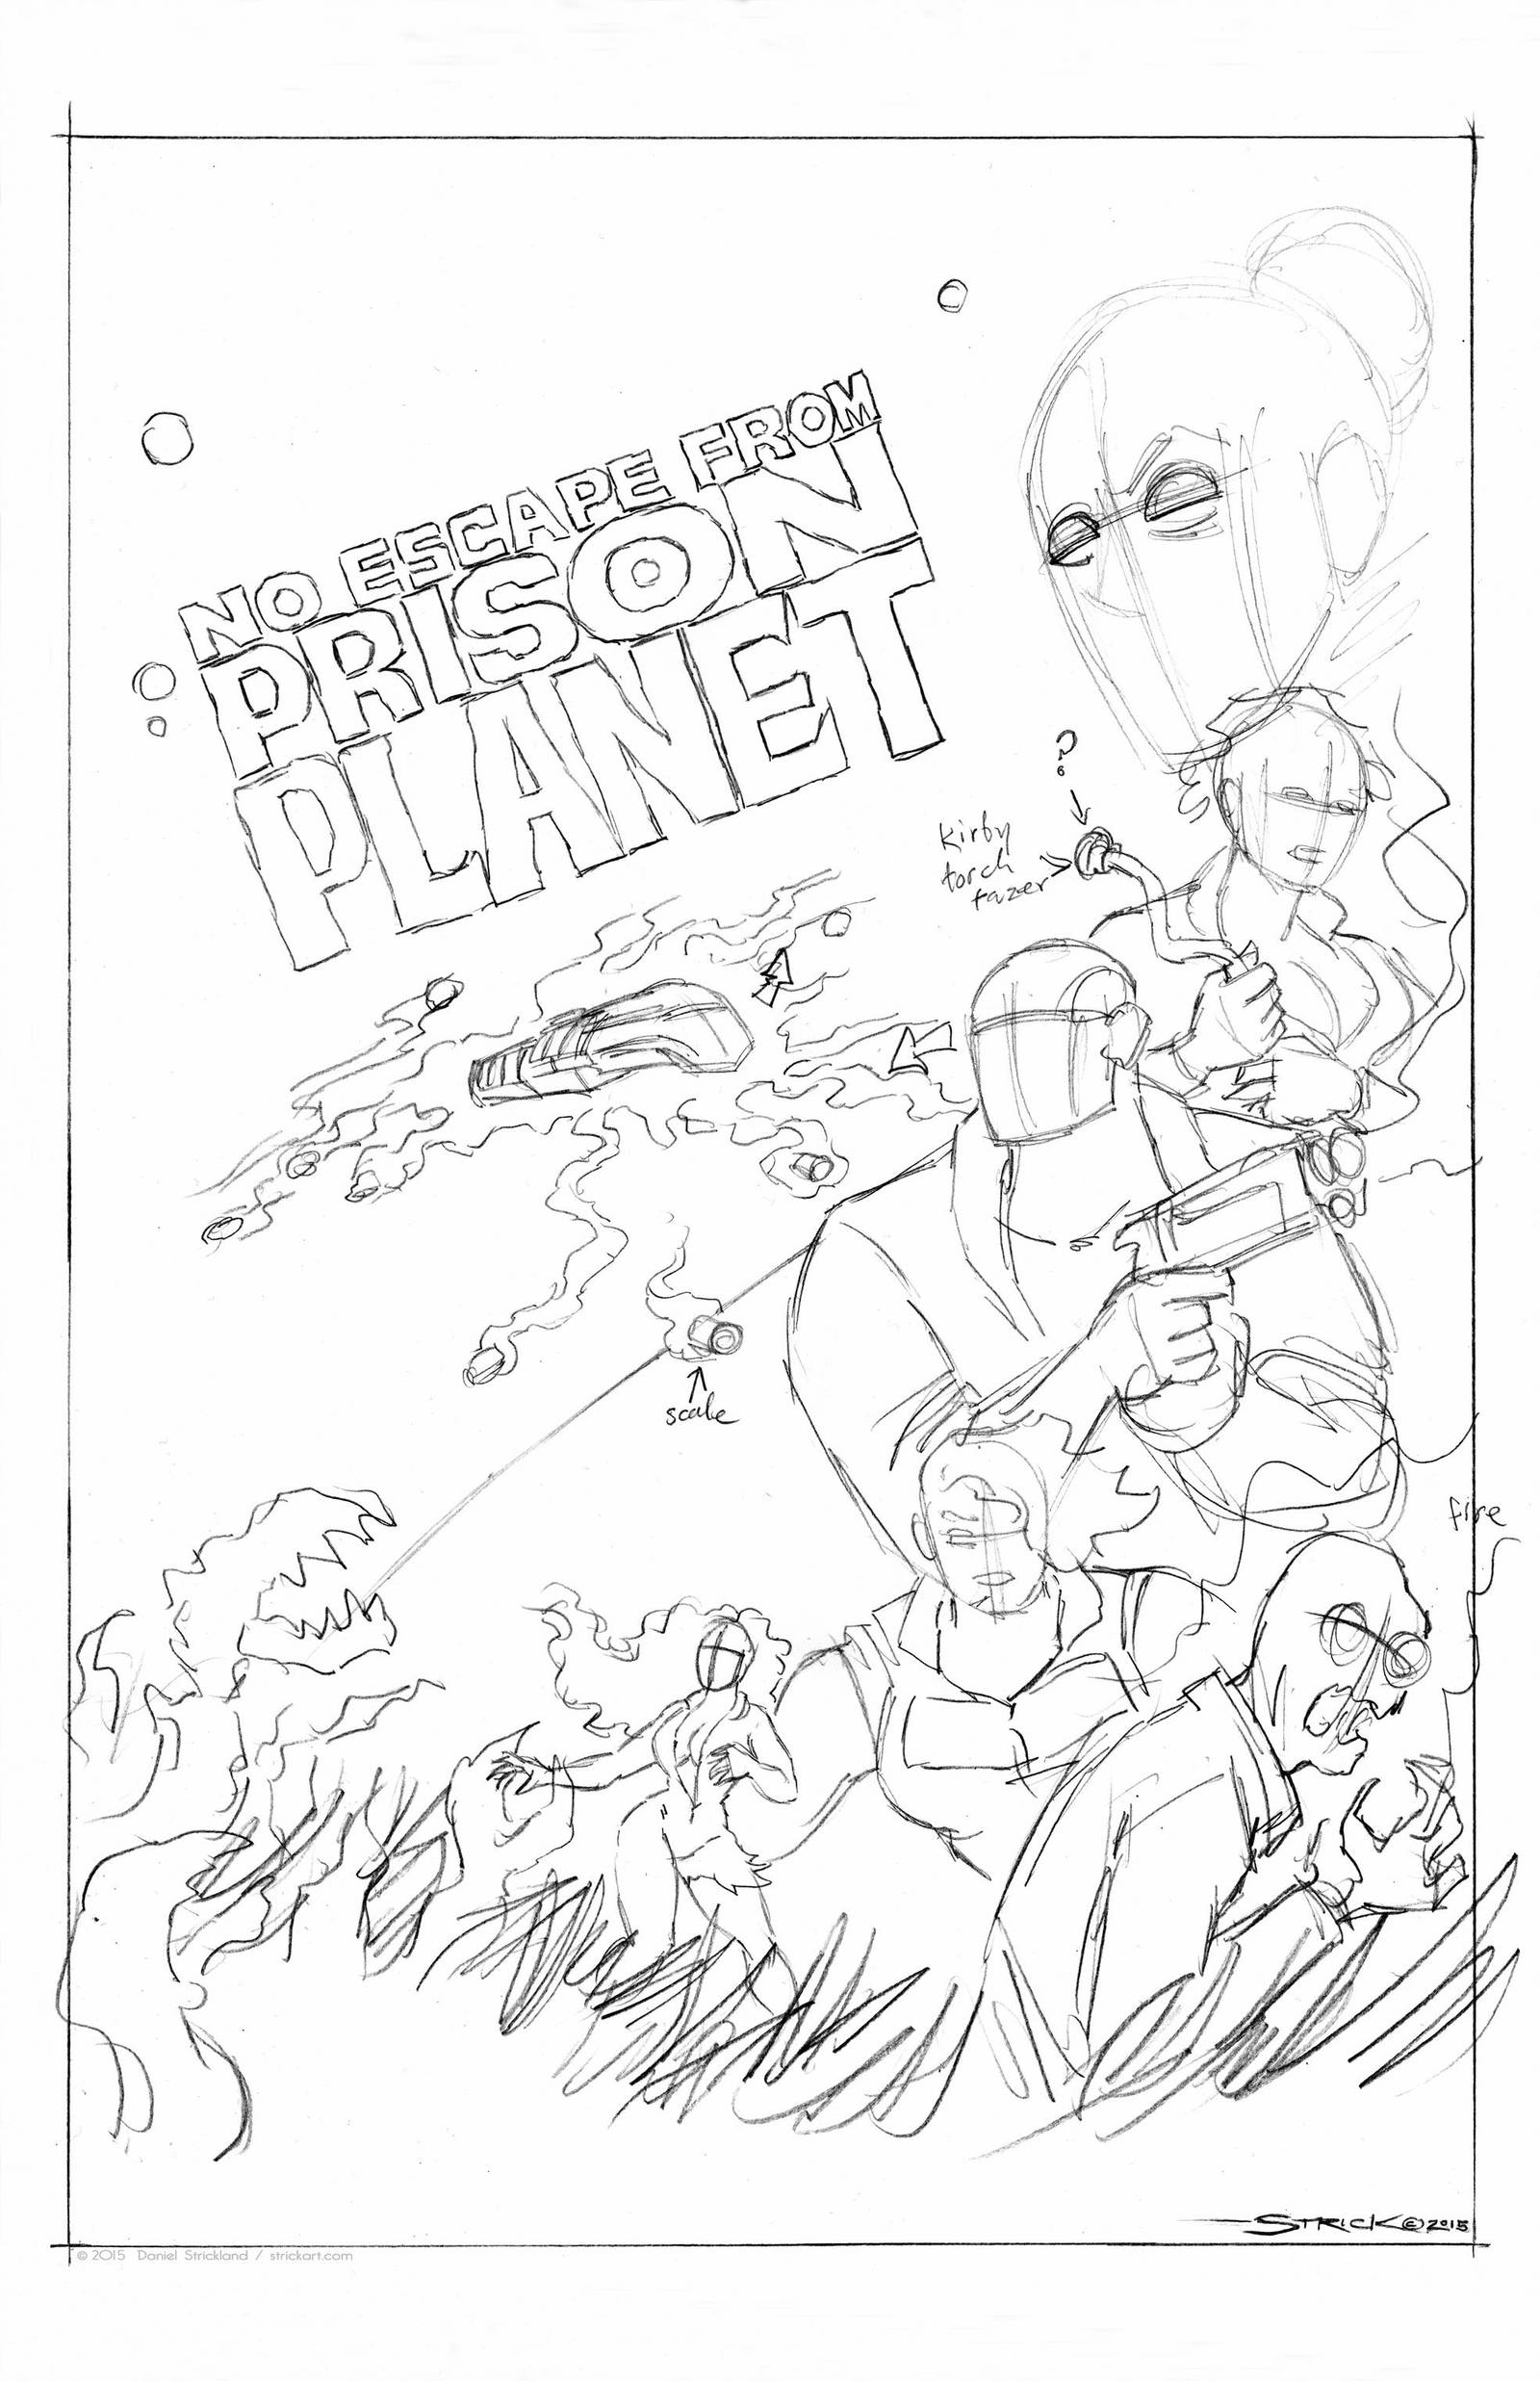 Prison Planet cover WIP 1 by strickart